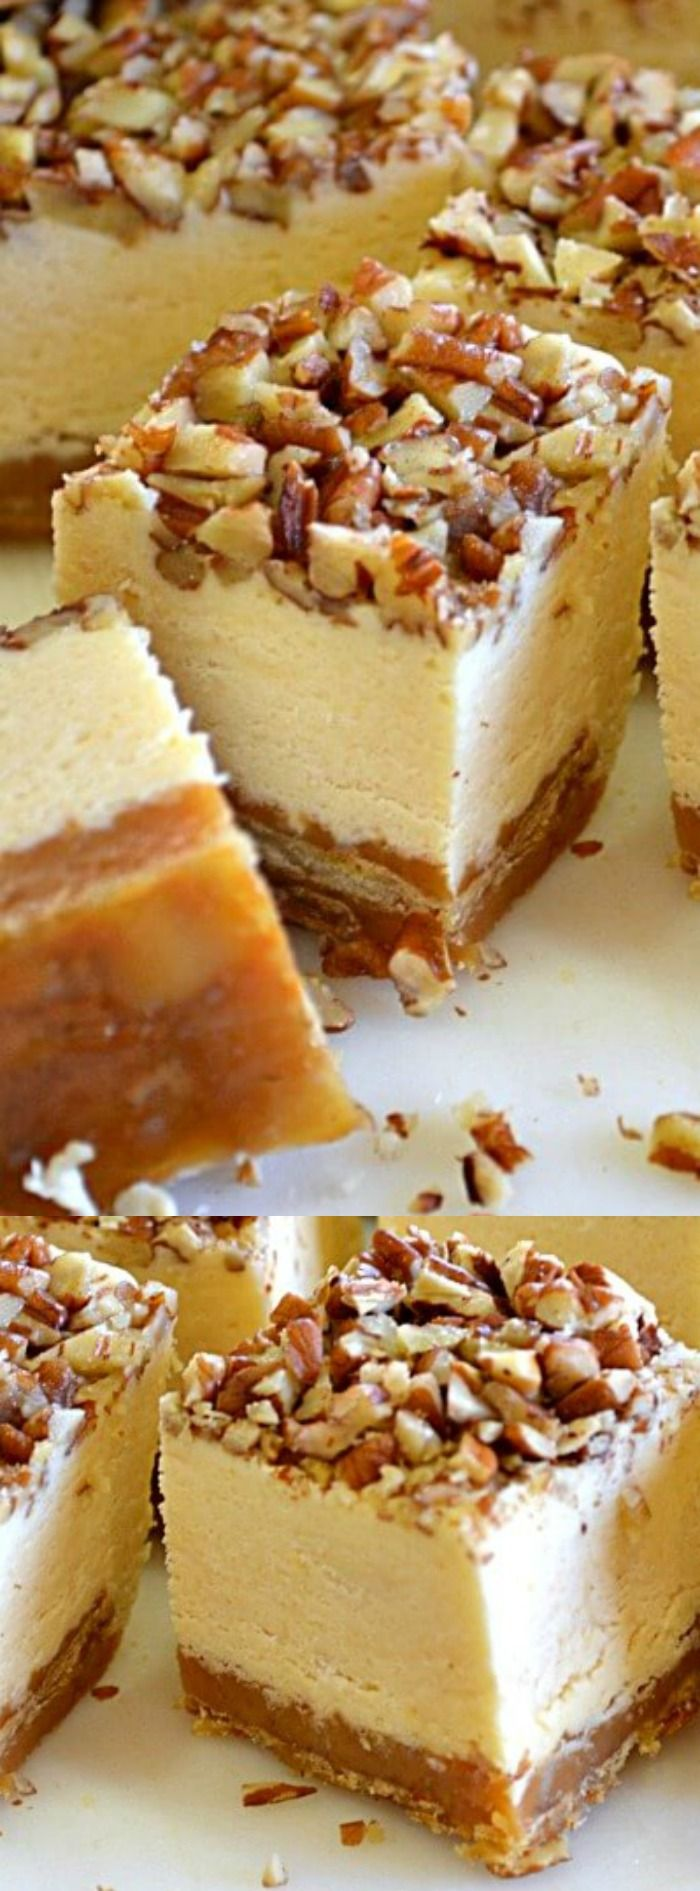 This Pecan Pie Cheesecake Fudge from Lady Behind the Curtain is the ULTIMATE treat during the holidays!